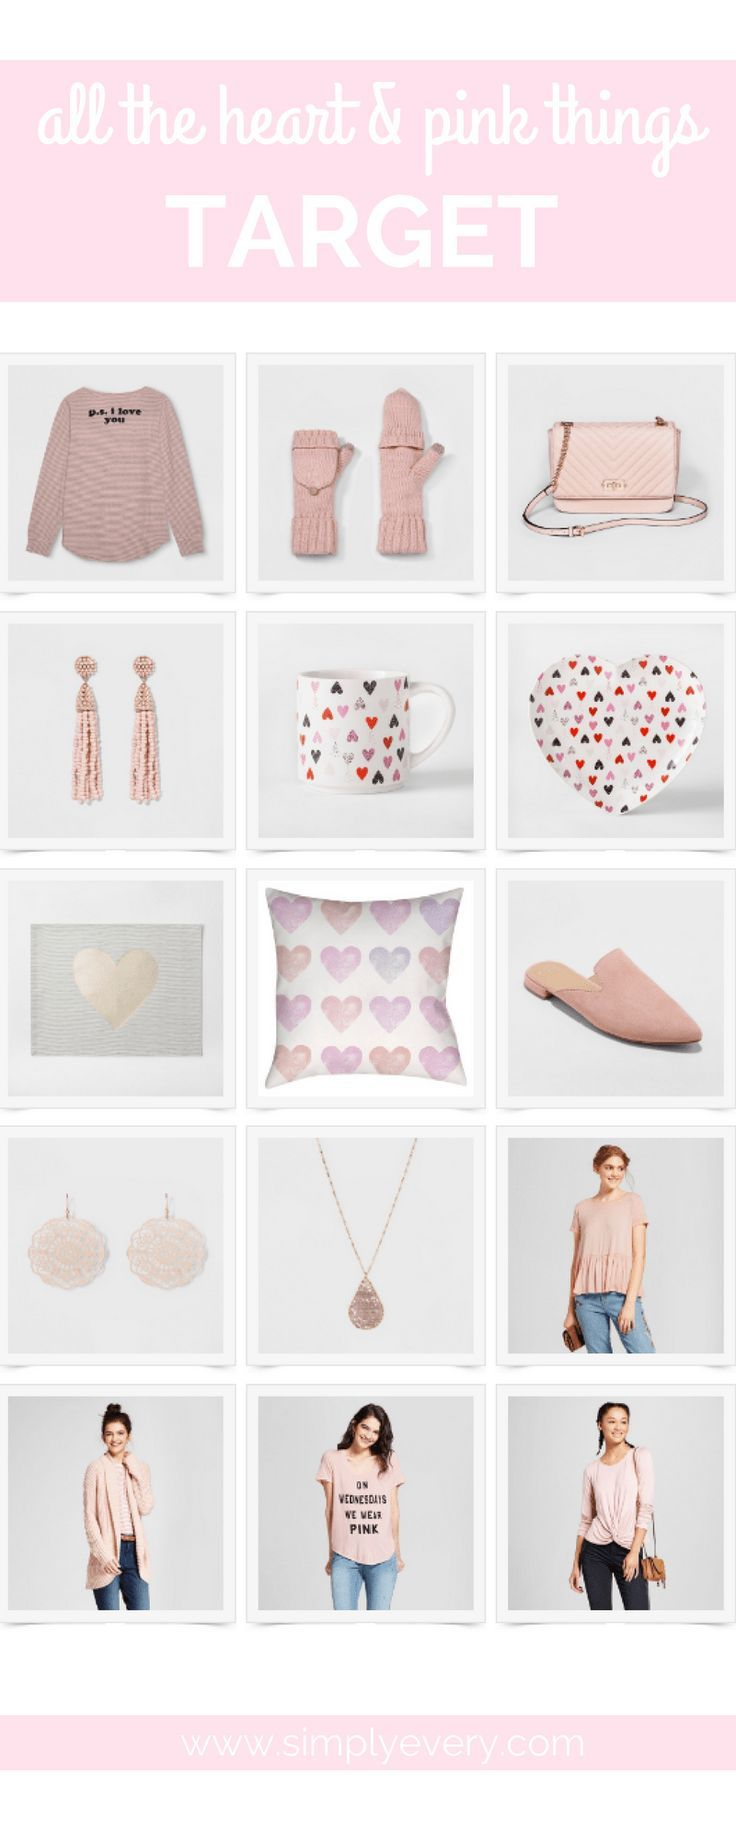 All the Heart & Pink Things – Target & Nordstrom, #giftguides, #valentinesday, shopping for her, gifts for her, gifts for mom, pink gifts, heart, pink accessories